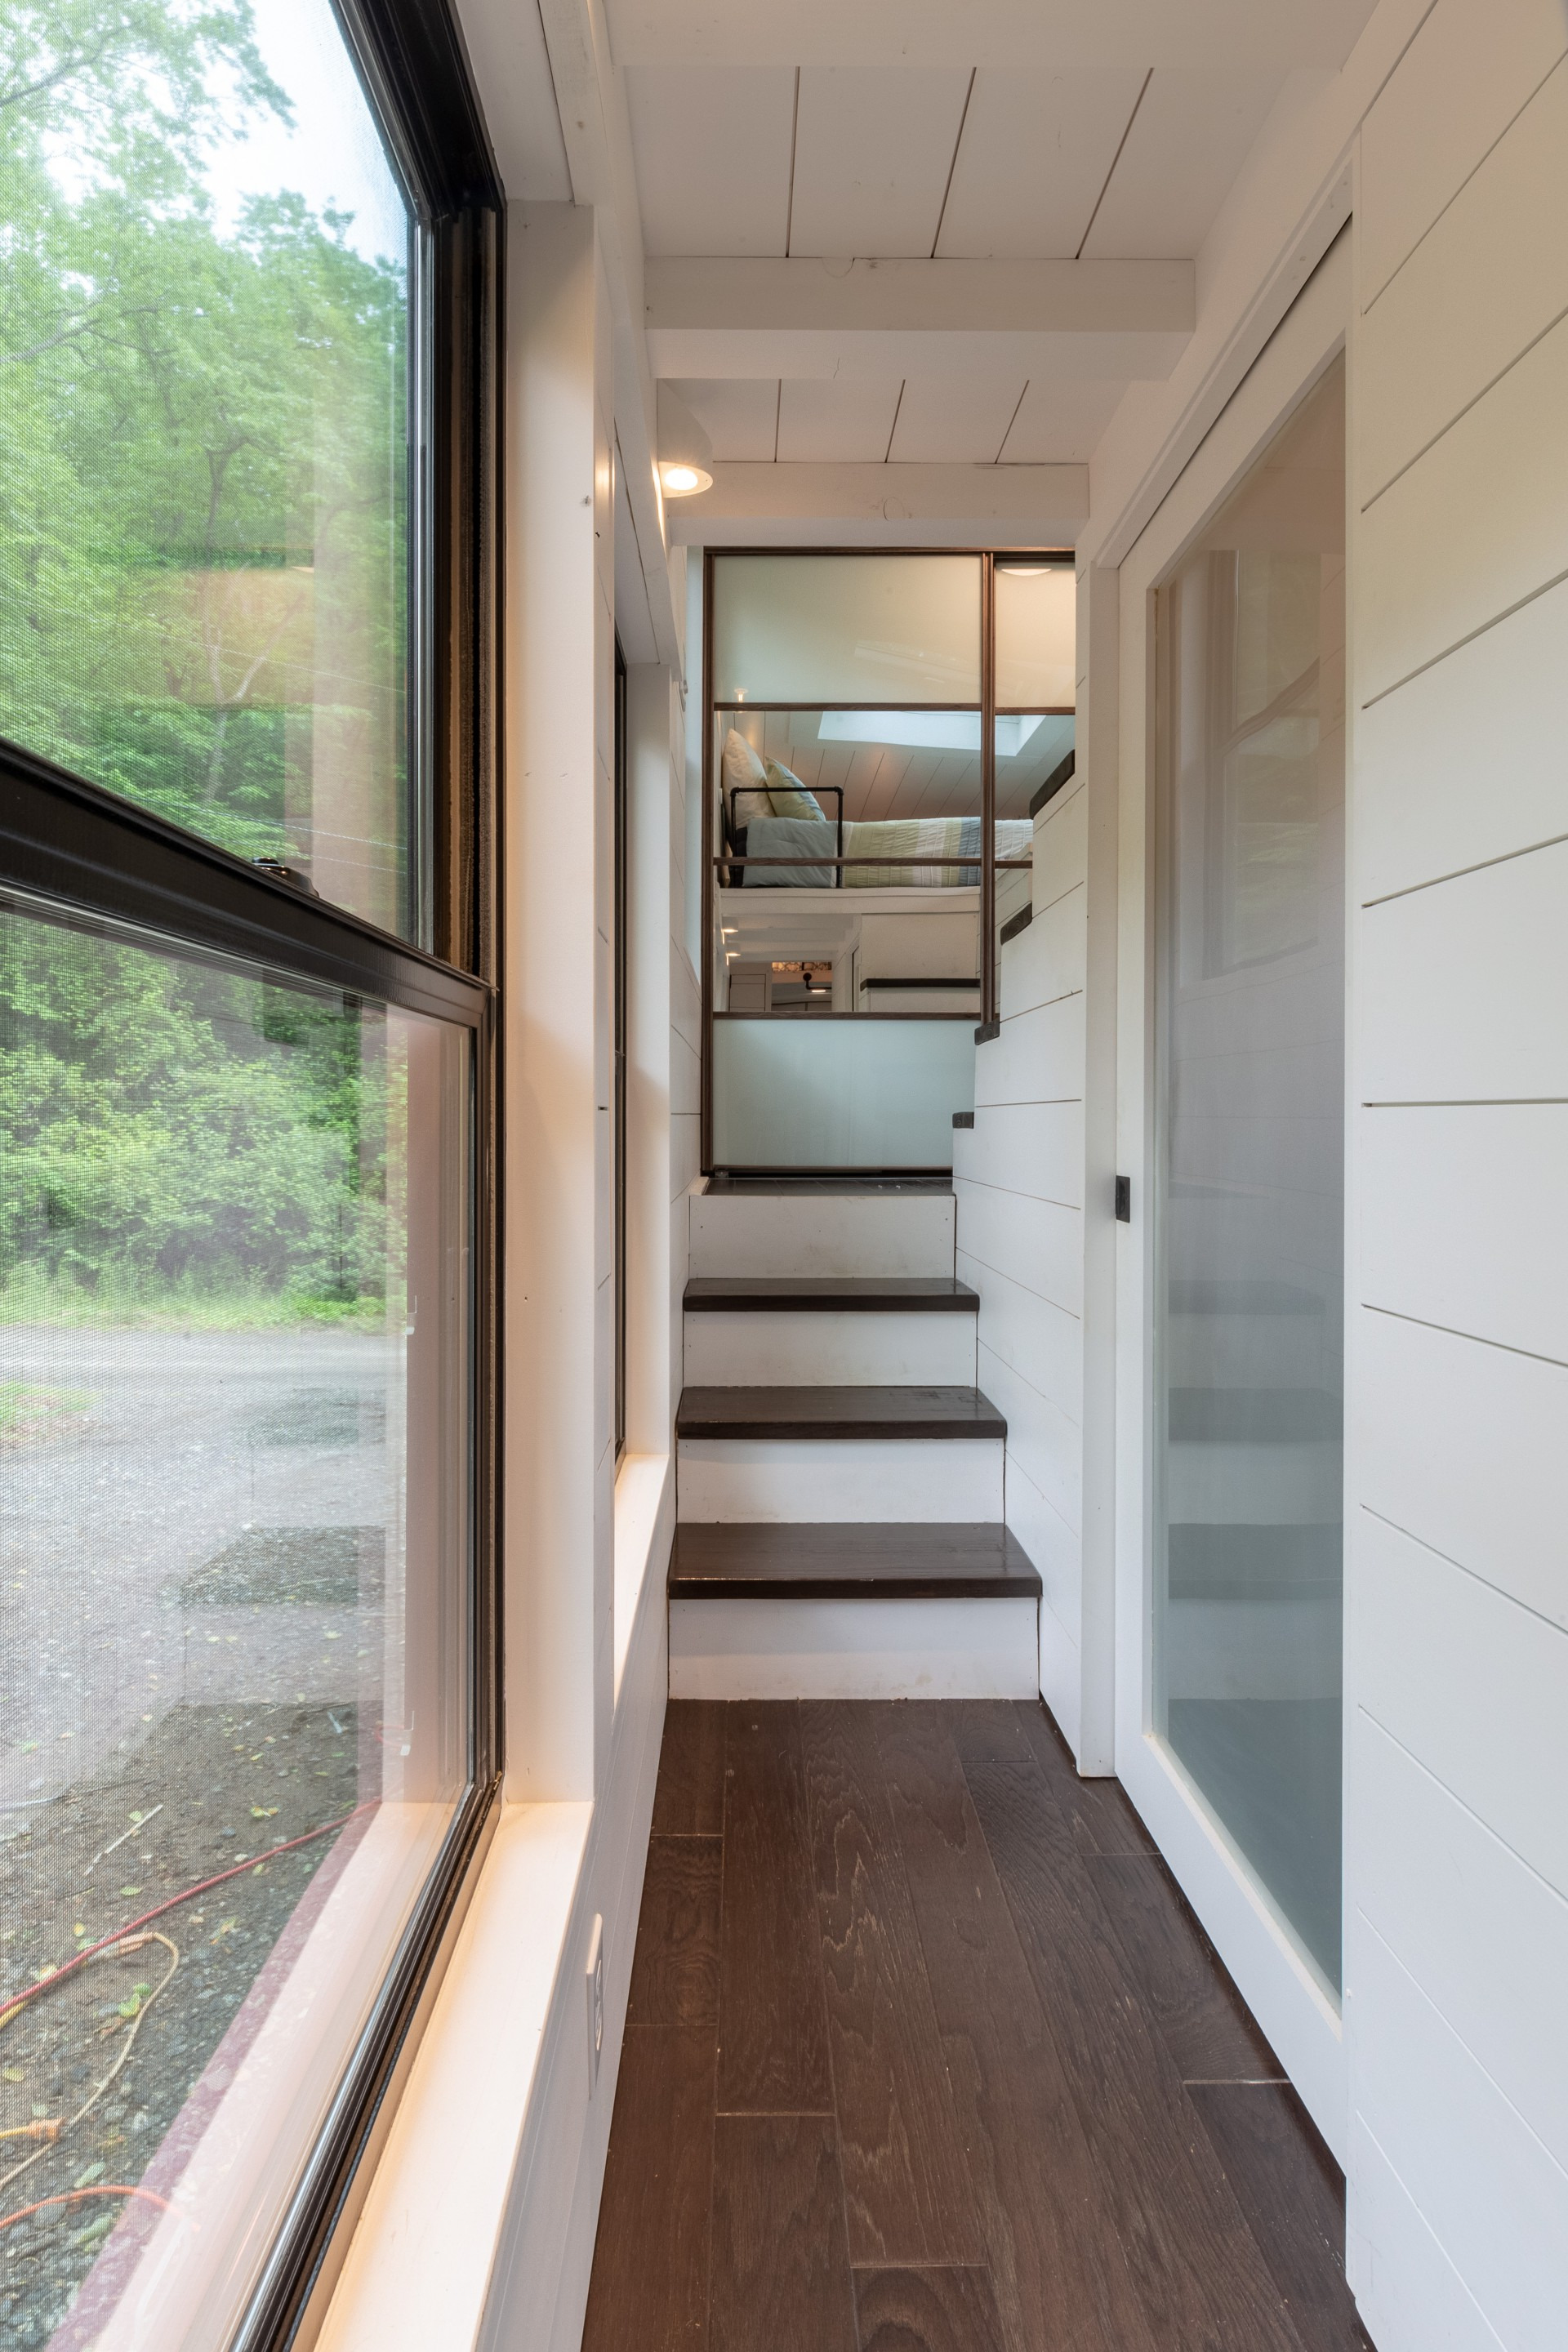 Tiny Houses On Wheels Plans New Tiny House On Wheels Home tour Erin Adams